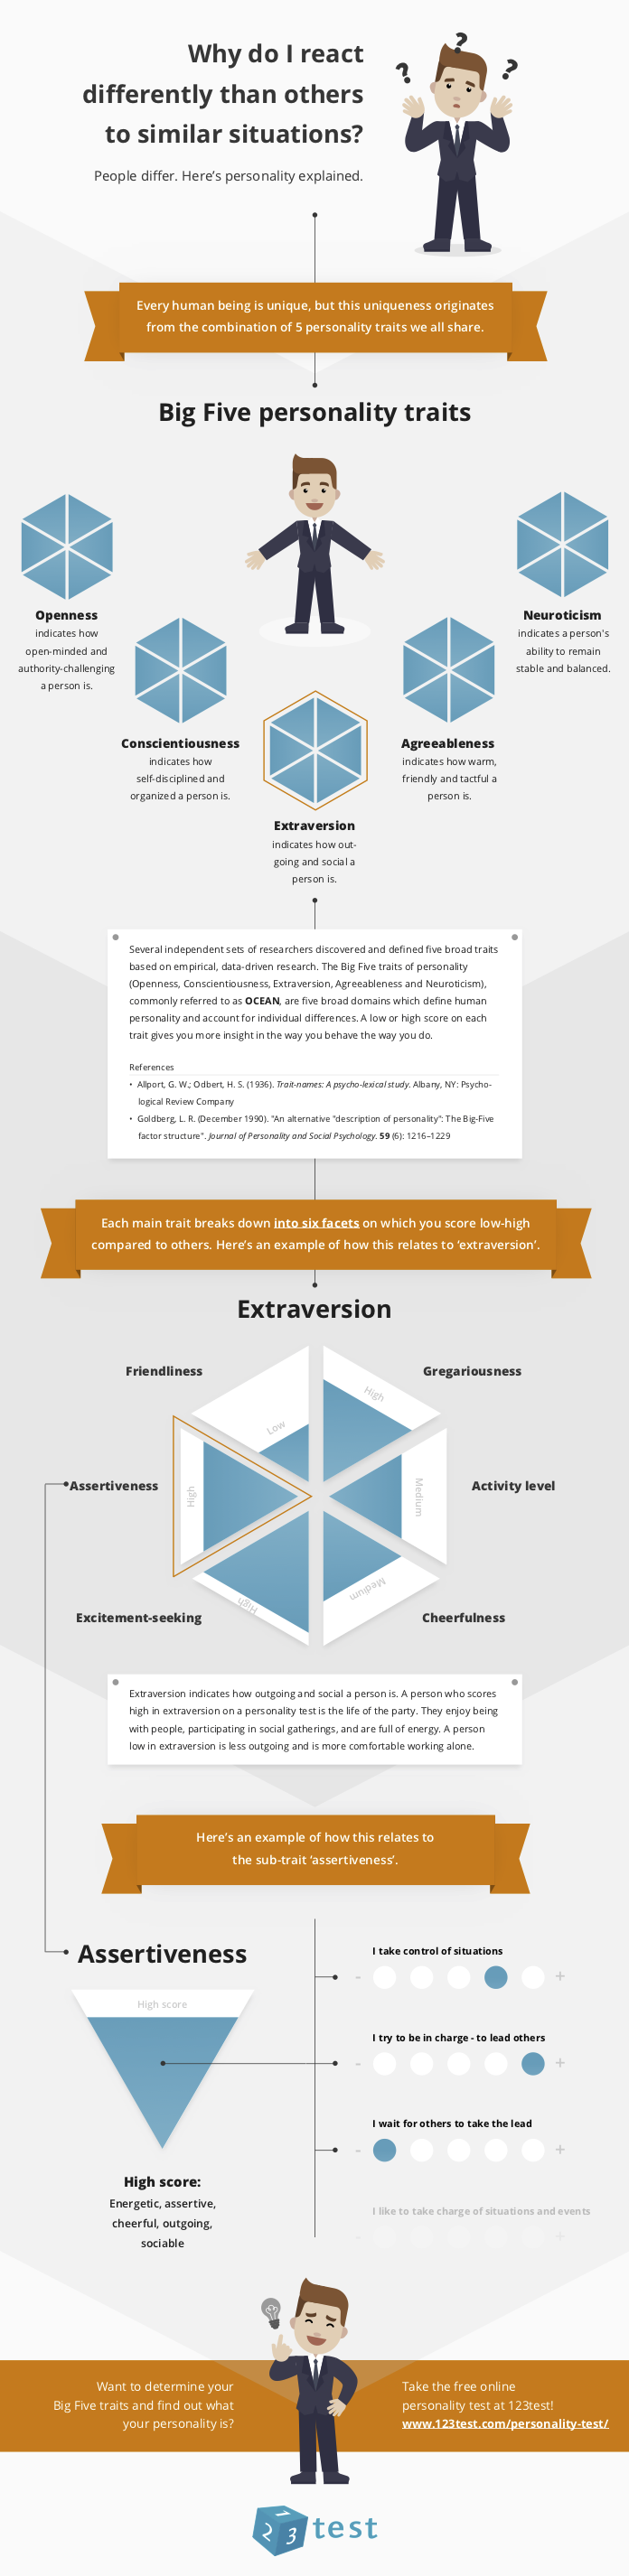 What is Extraversion